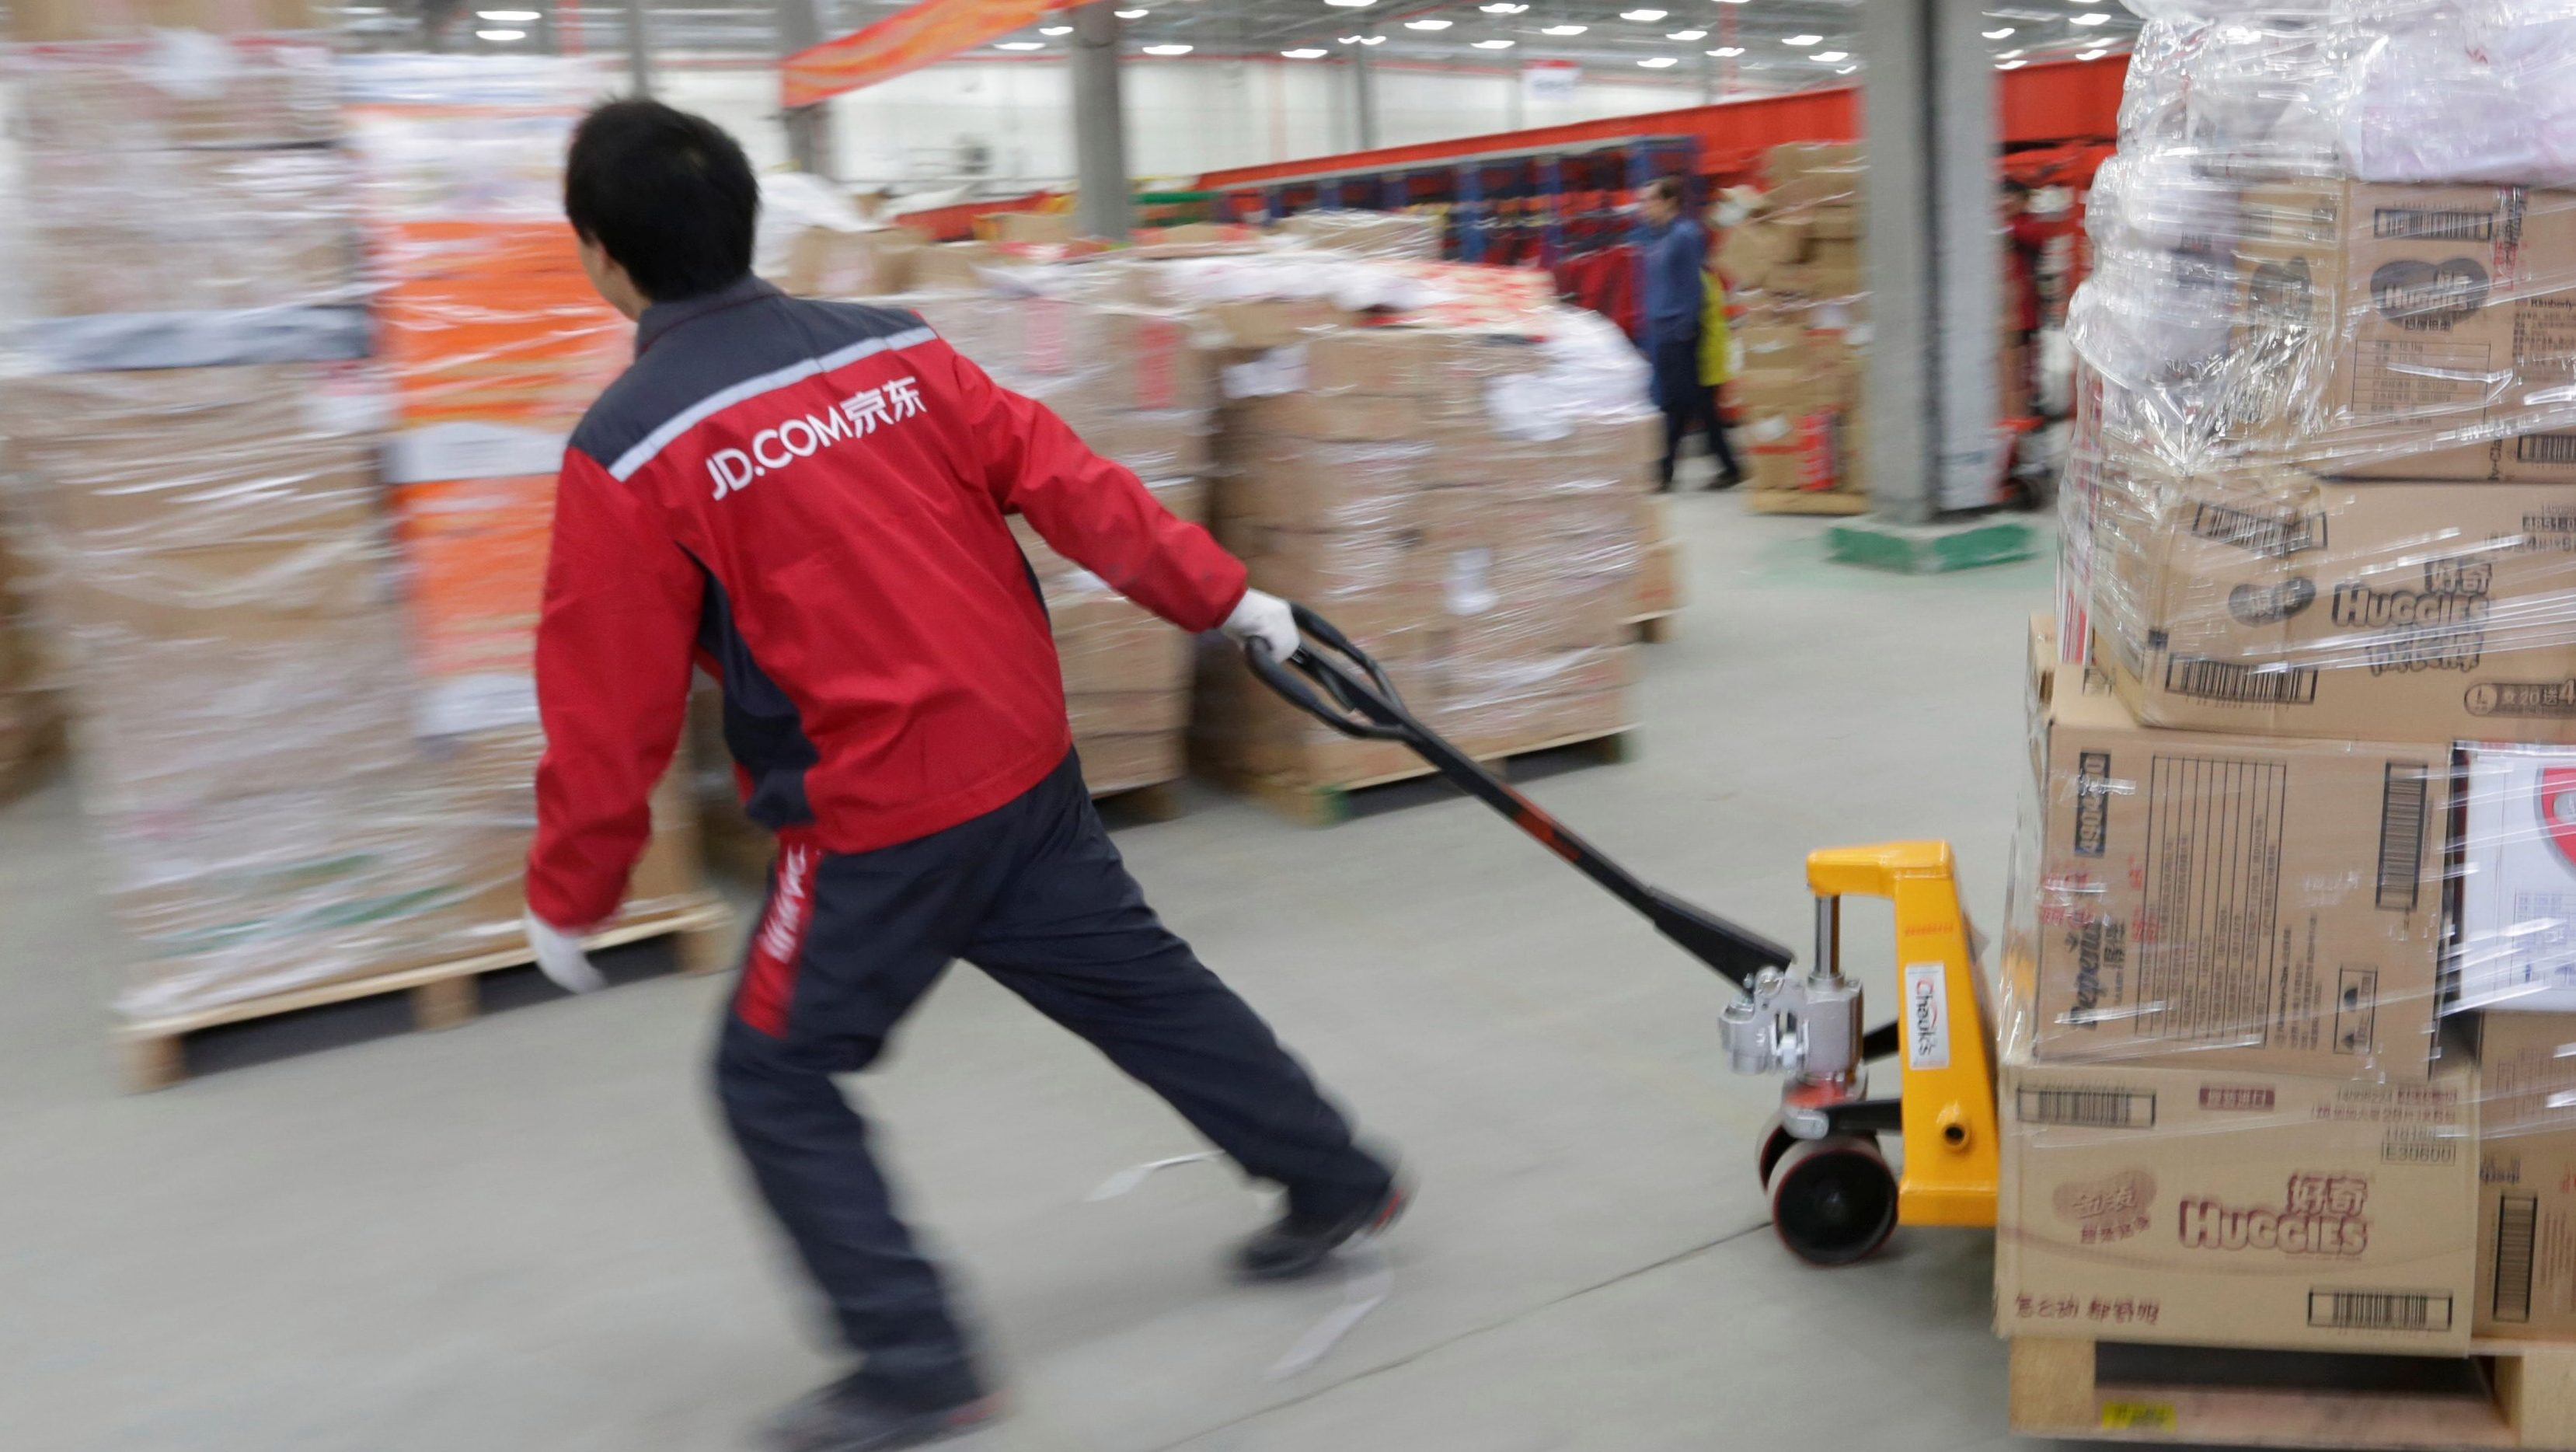 A worker moves goods at a JD.com logistics centre in Langfang, Hebei province, China November 10, 2015. Picture taken November 10, 2015.